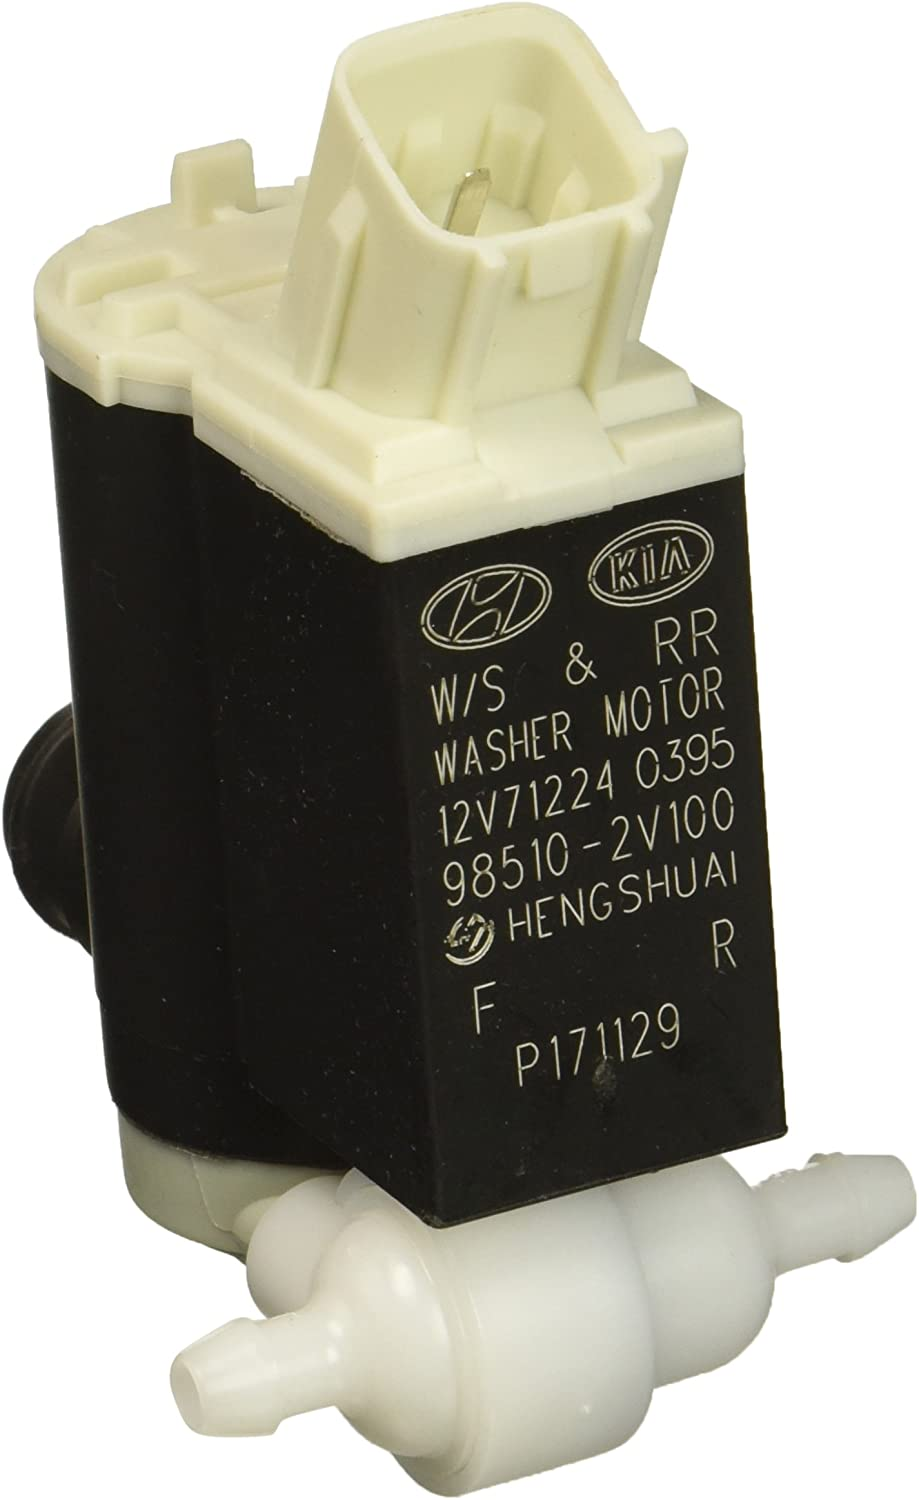 Vehicle Windshield Washer Pump 98510-26100 3-Pin Connector Twin Outlet Compatible with Elantra Santa Fe Cerato Replacement Part